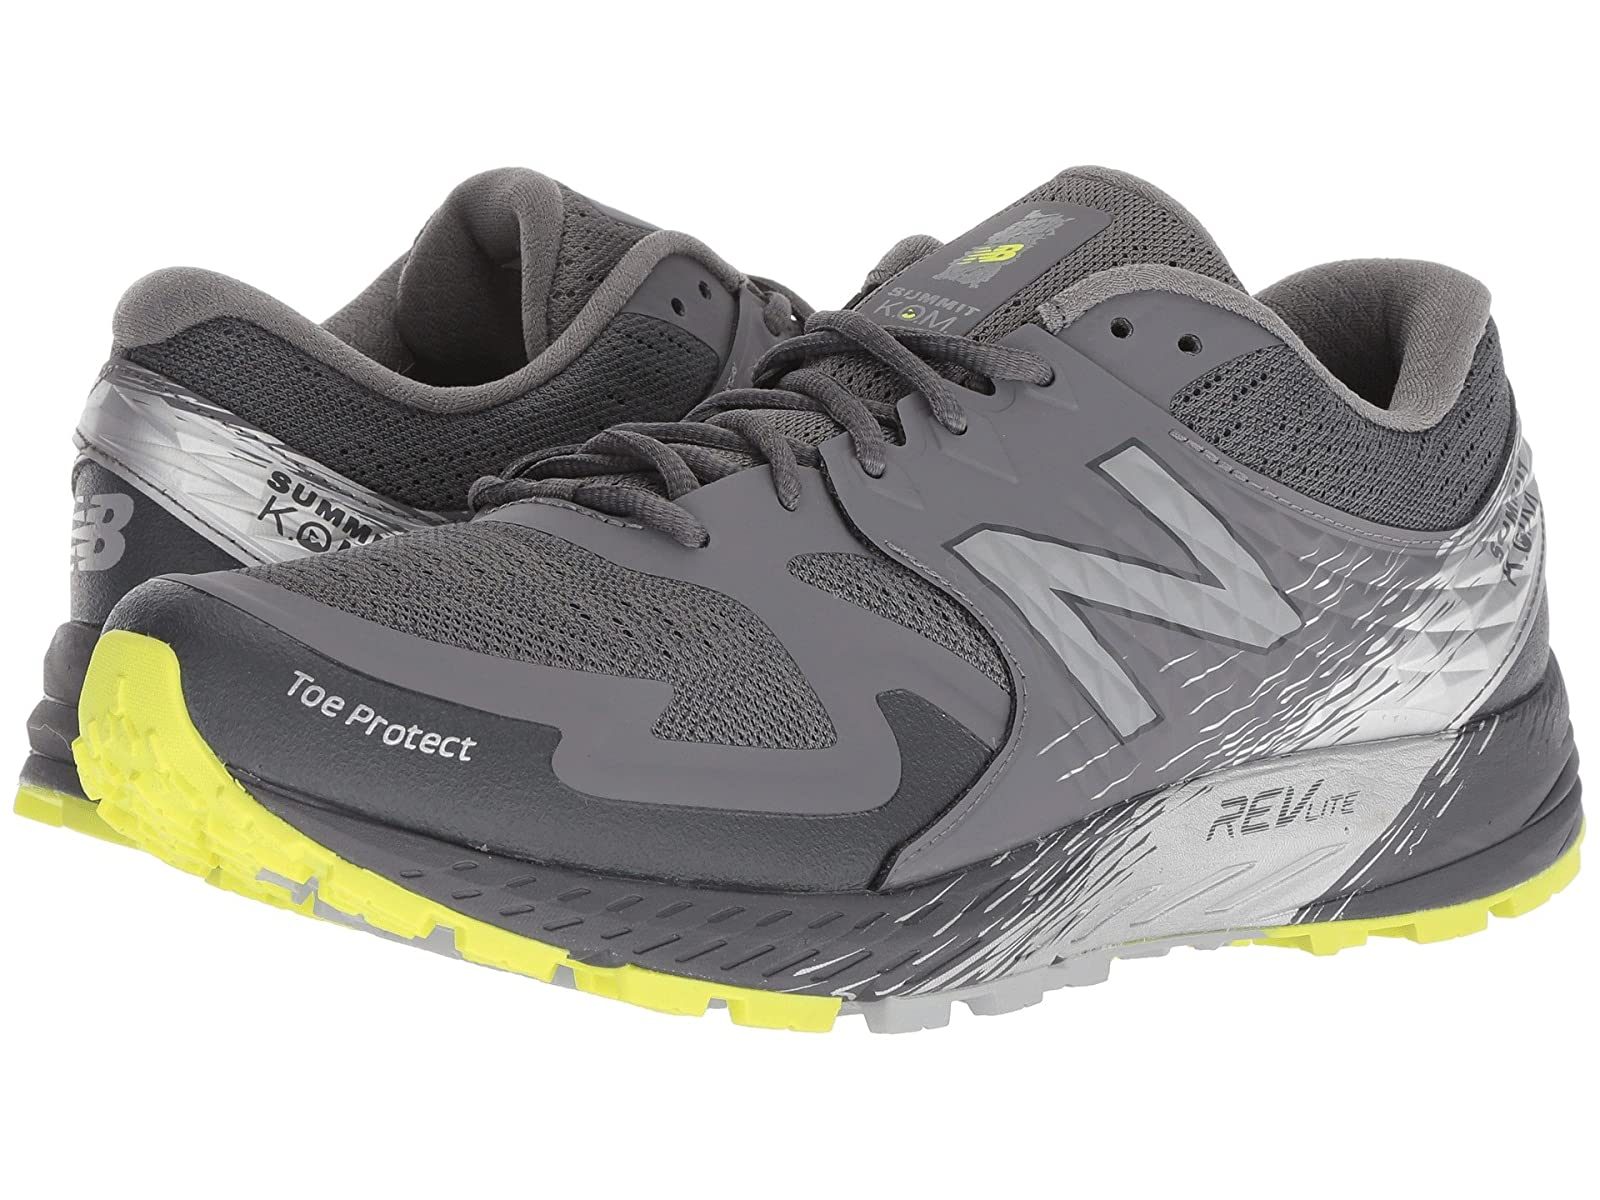 New Balance Summit KOMAtmospheric grades have affordable shoes